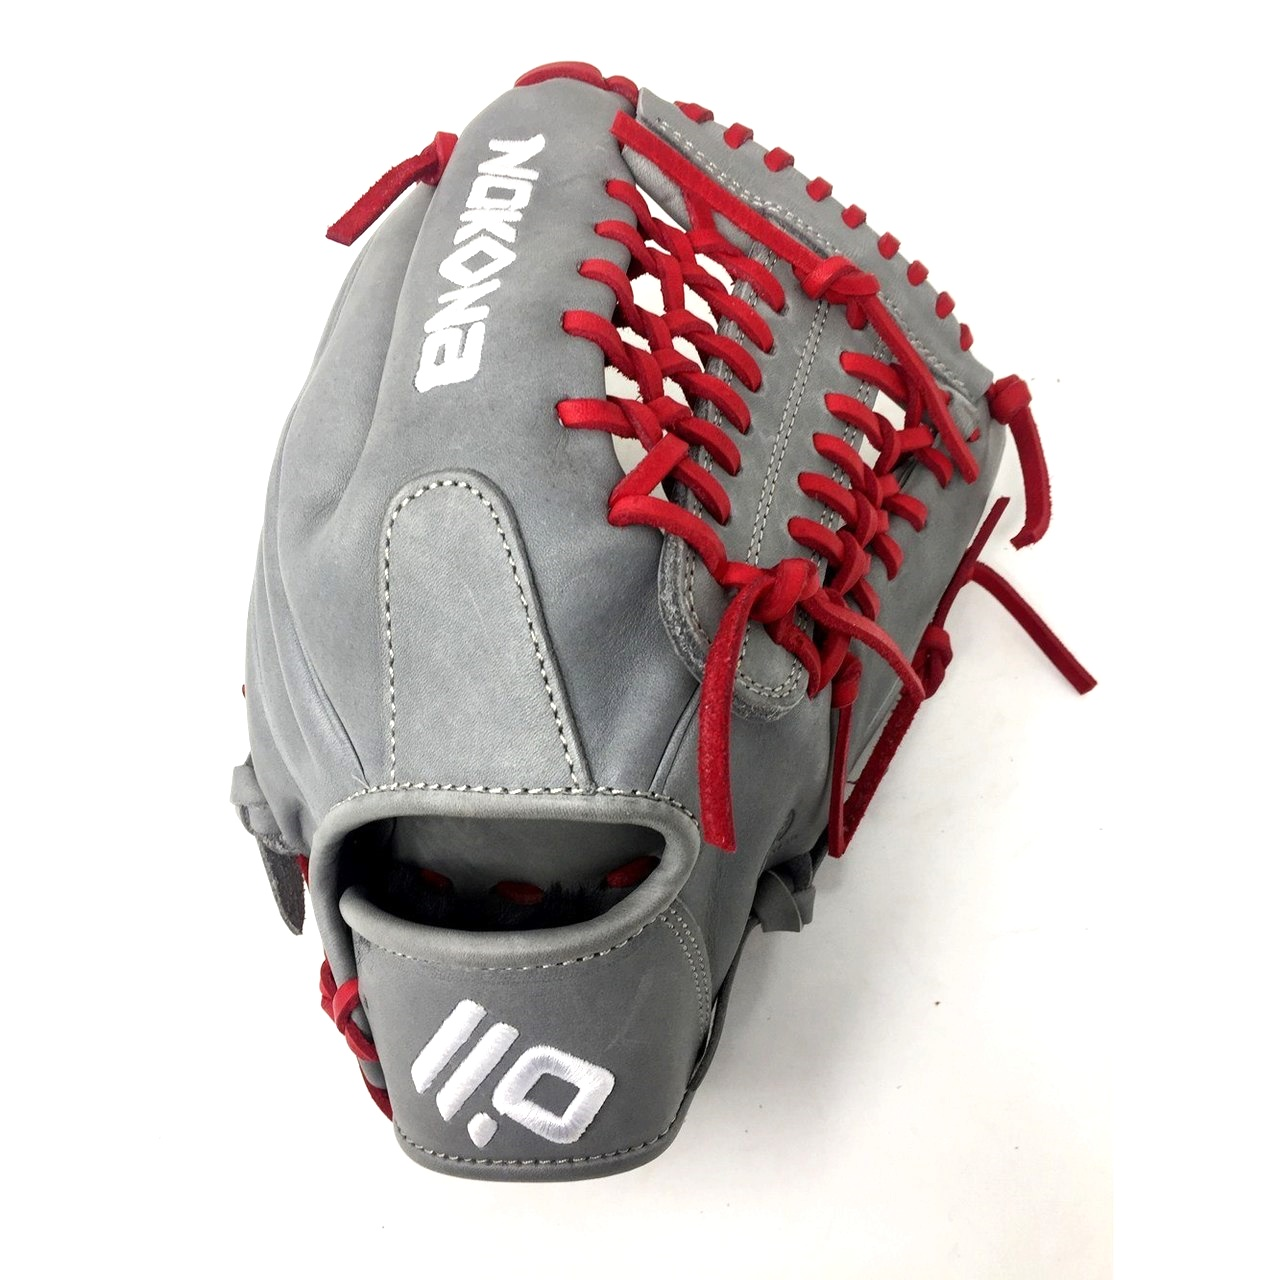 nokona-americankip-14u-gray-with-red-laces-11-25-baseball-glove-mod-trap-web-right-hand-throw A-200M-GR-RD-RightHandThrow Nokona Does Not Apply The American Kip series made with the finest American steer hide